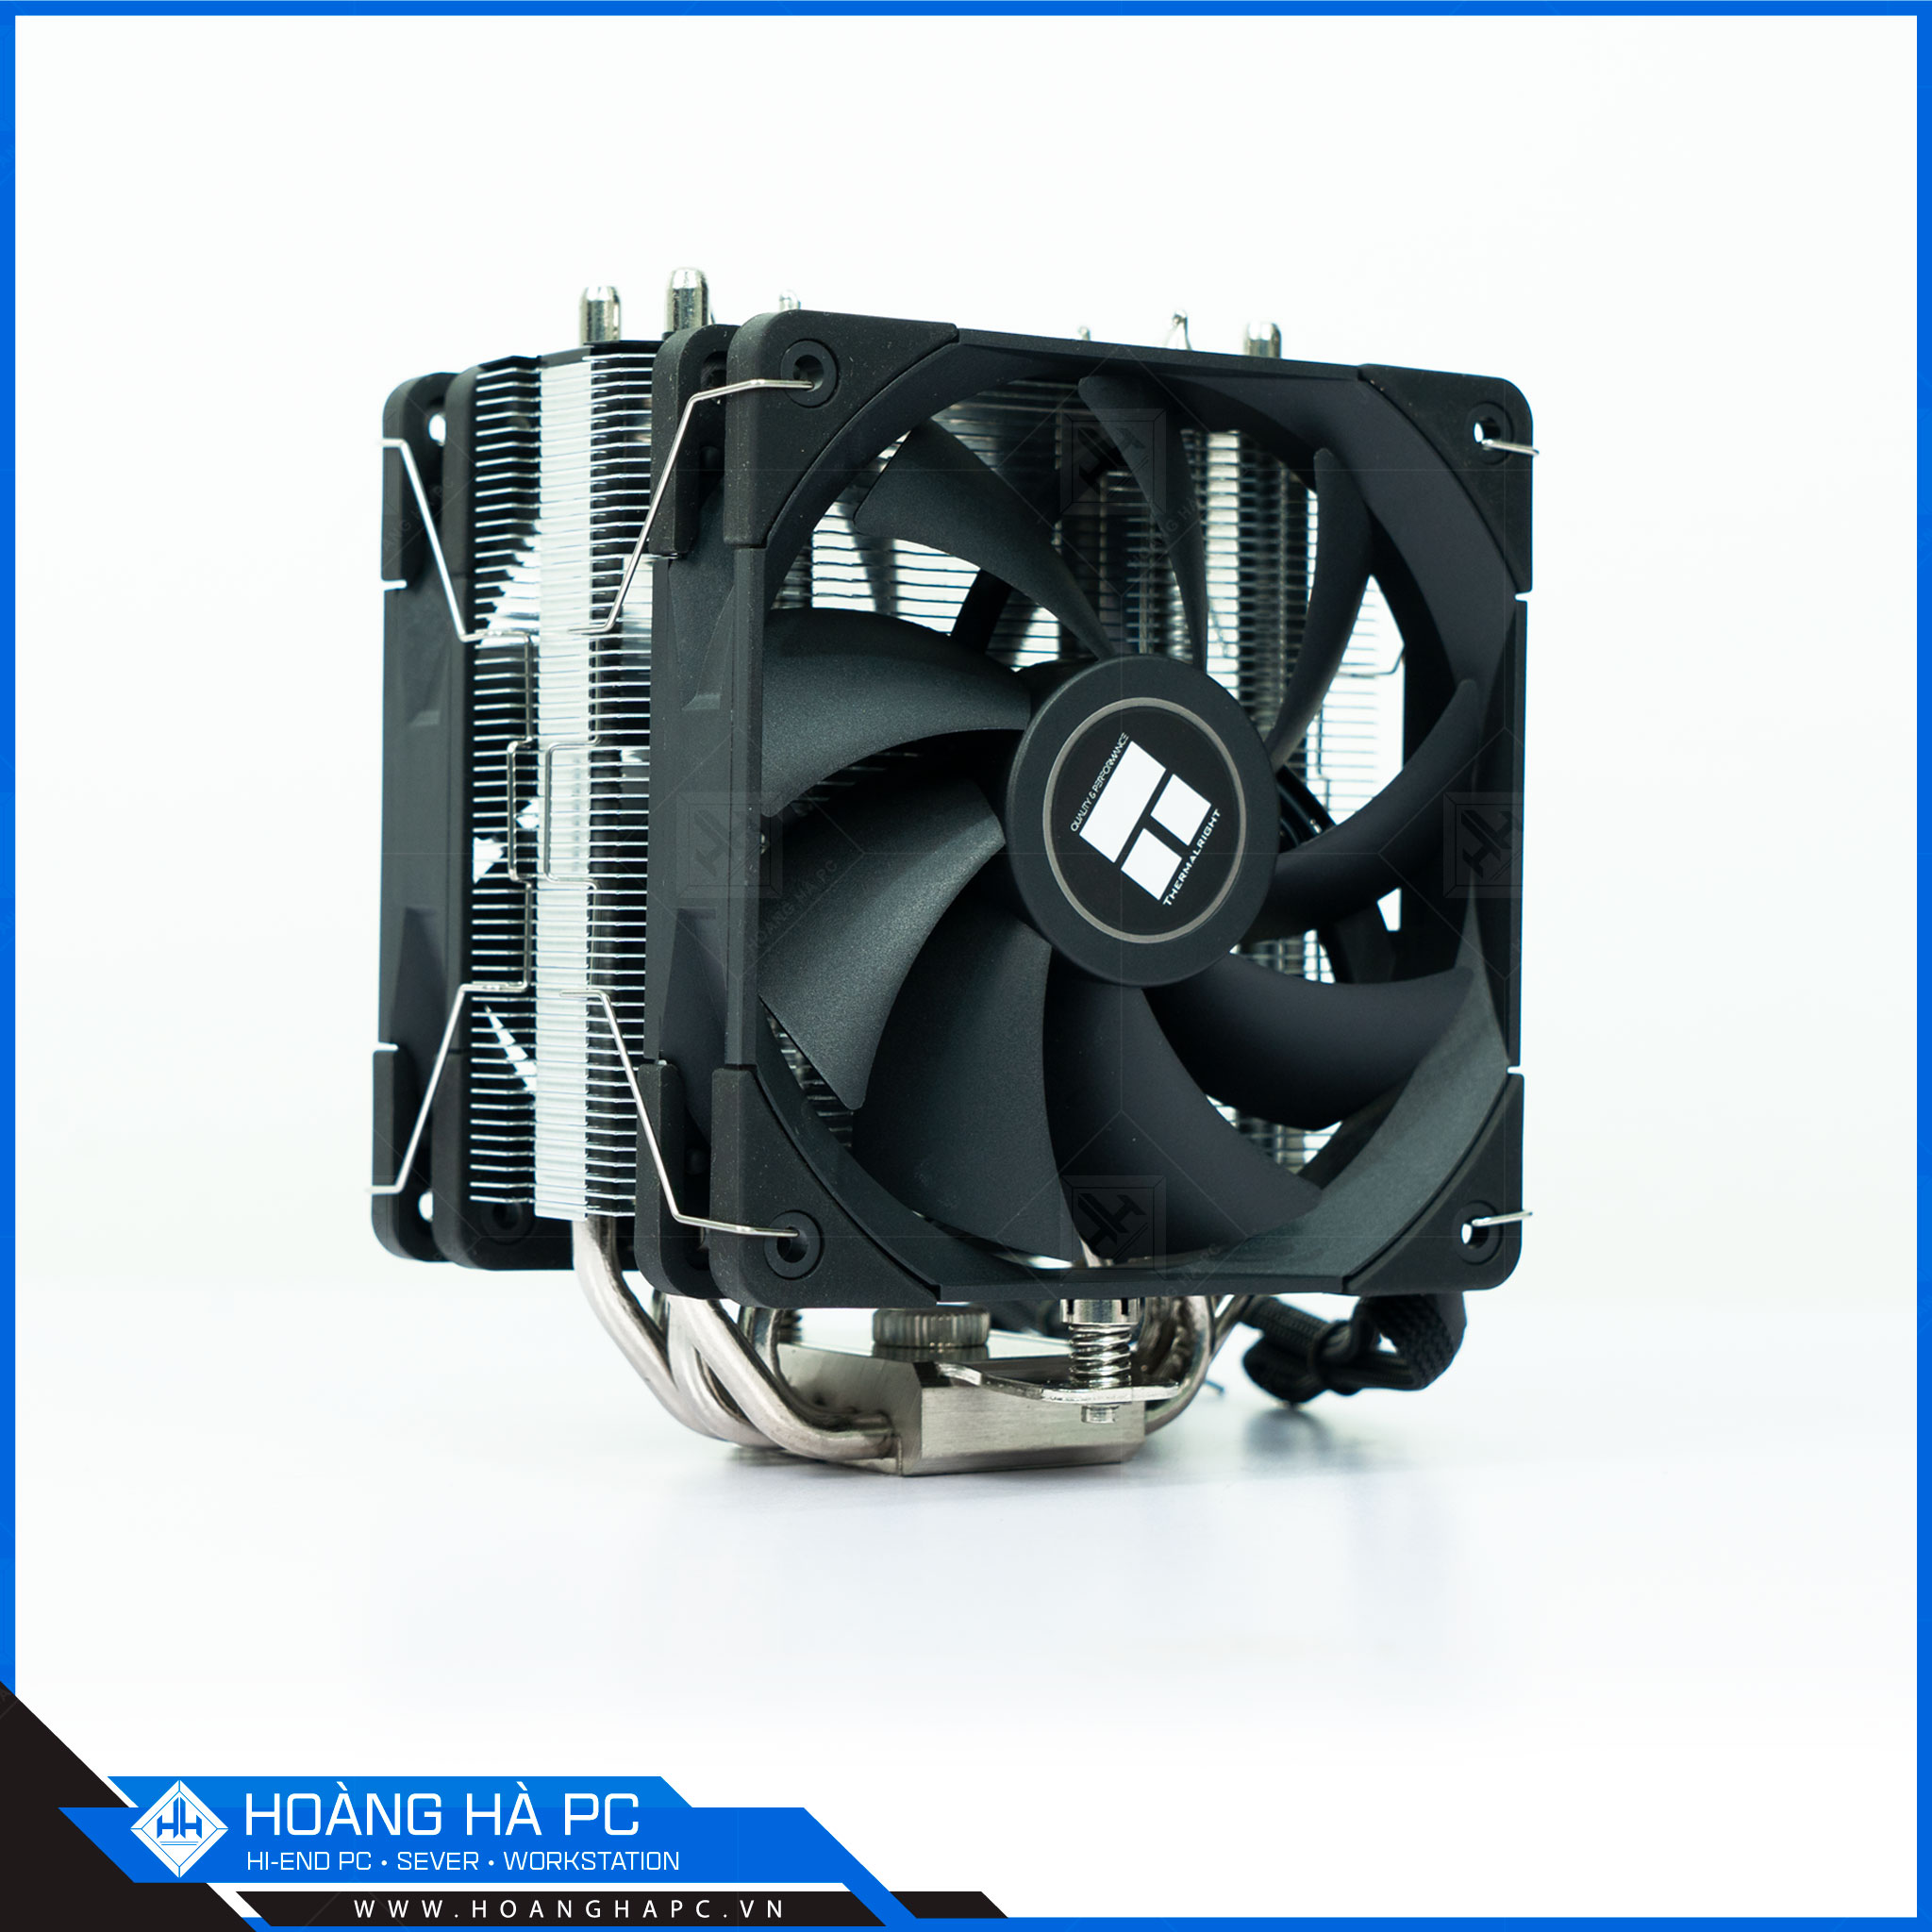 Tản Nhiệt Thermalright ASSASSIN KING 120 Plus ( 2 Fan + 5 Heatpipe )